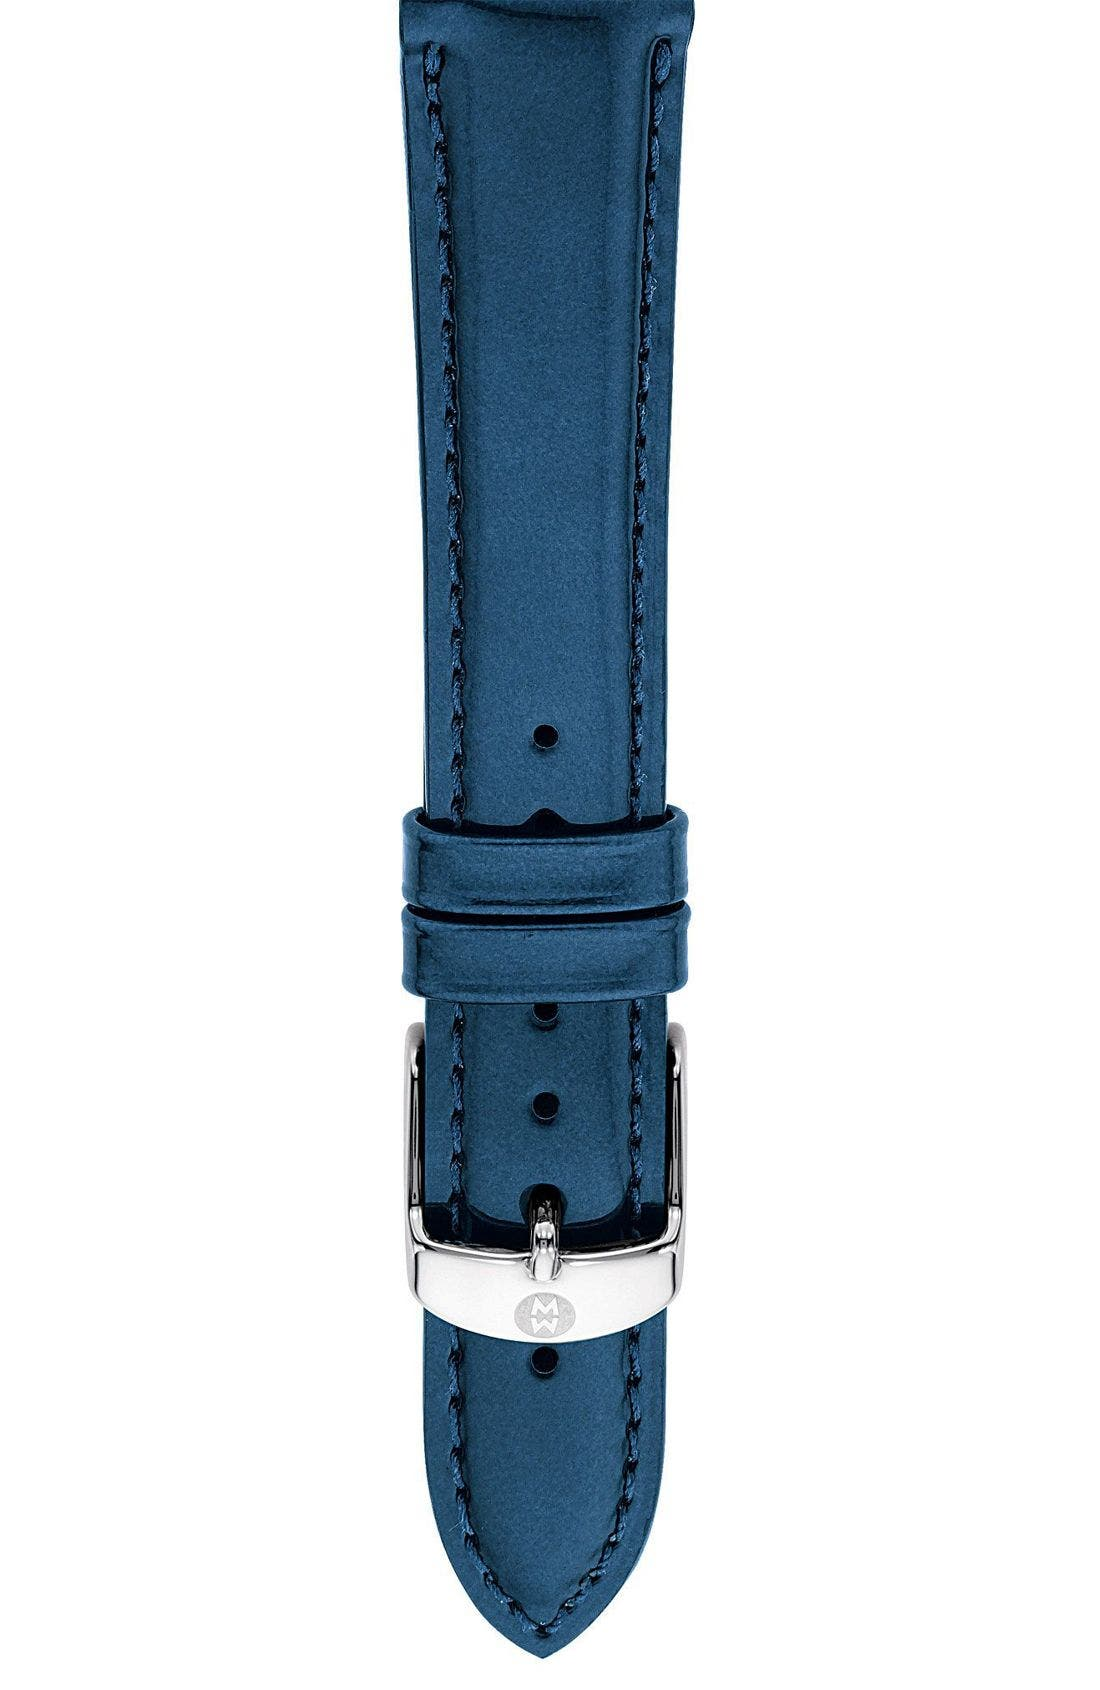 16mm Patent Leather Watch Strap,                         Main,                         color, 400